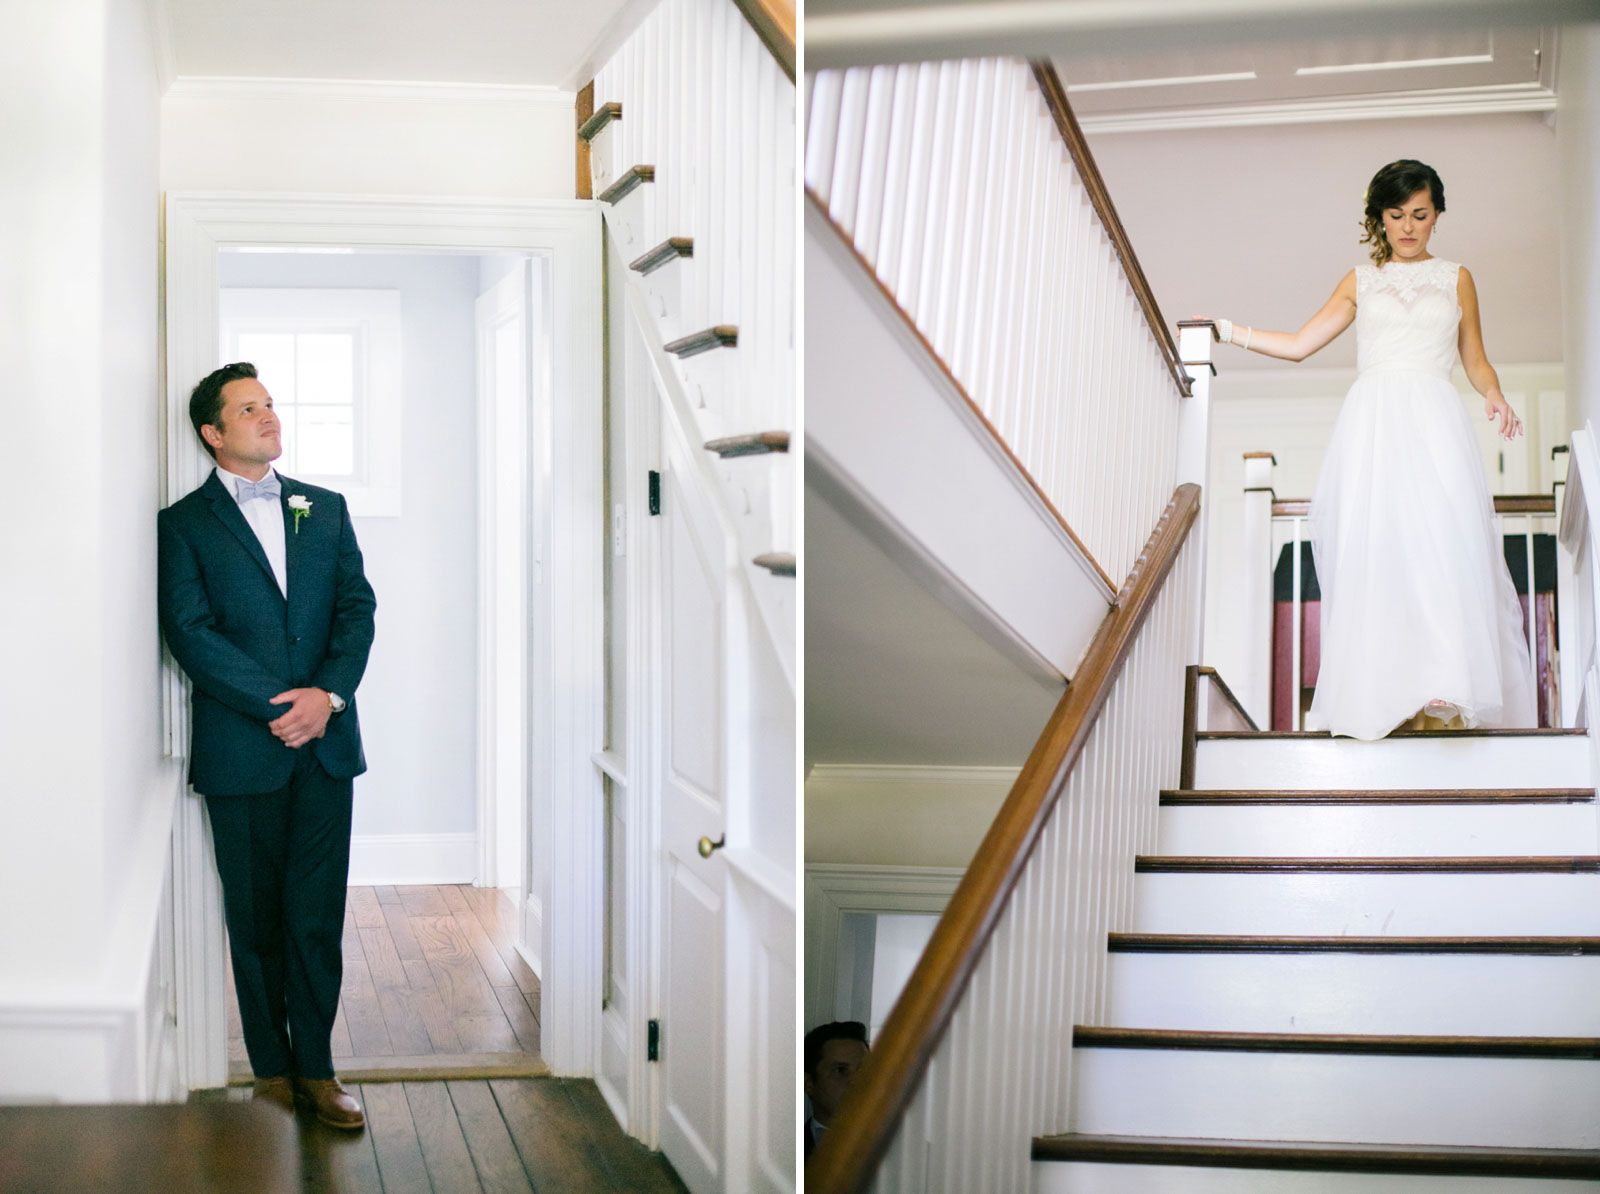 Groom waiting for bride to come down the stairs for their first look, bride walking down the stairs